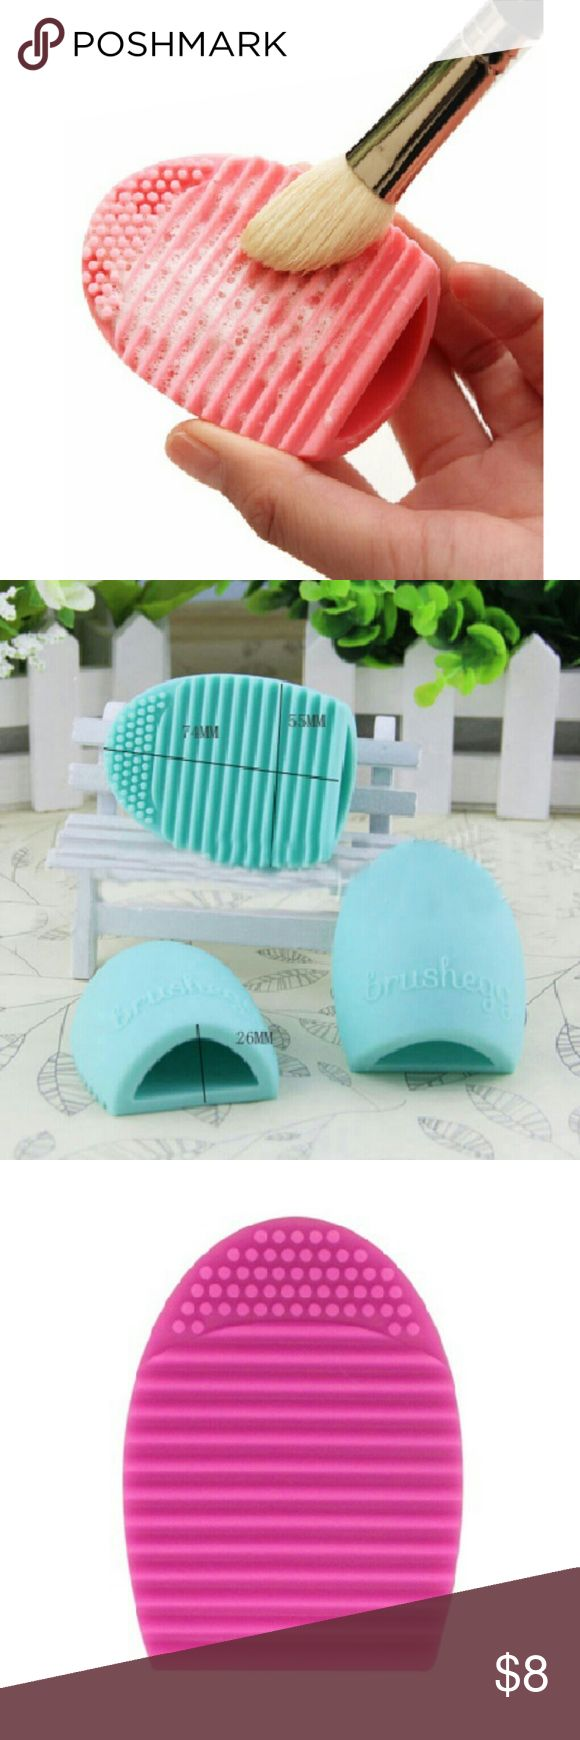 MakeUp Washing Scrubber Brush egg Cleaning Cleaner This?is?the?makeup?brush?cleaner,?will?help?thoroughly?clean?through?all?the?bristles?and?make?cleaning?your?brushes.  Very?useful?tool?to?cleaning?various?of?your?makeup?brushes Compact?in?size?and?very?cute,will?fit?easily?in?your?makeup?case. Grand?new,made?of?high?quality?silicone,will?not?damage?your?brushes?Smaller?knobs?on?the?top?used?for?foaming?and?lathering The?grooves?in?the?bottom?of?the?egg are used?to agitate the bristles…